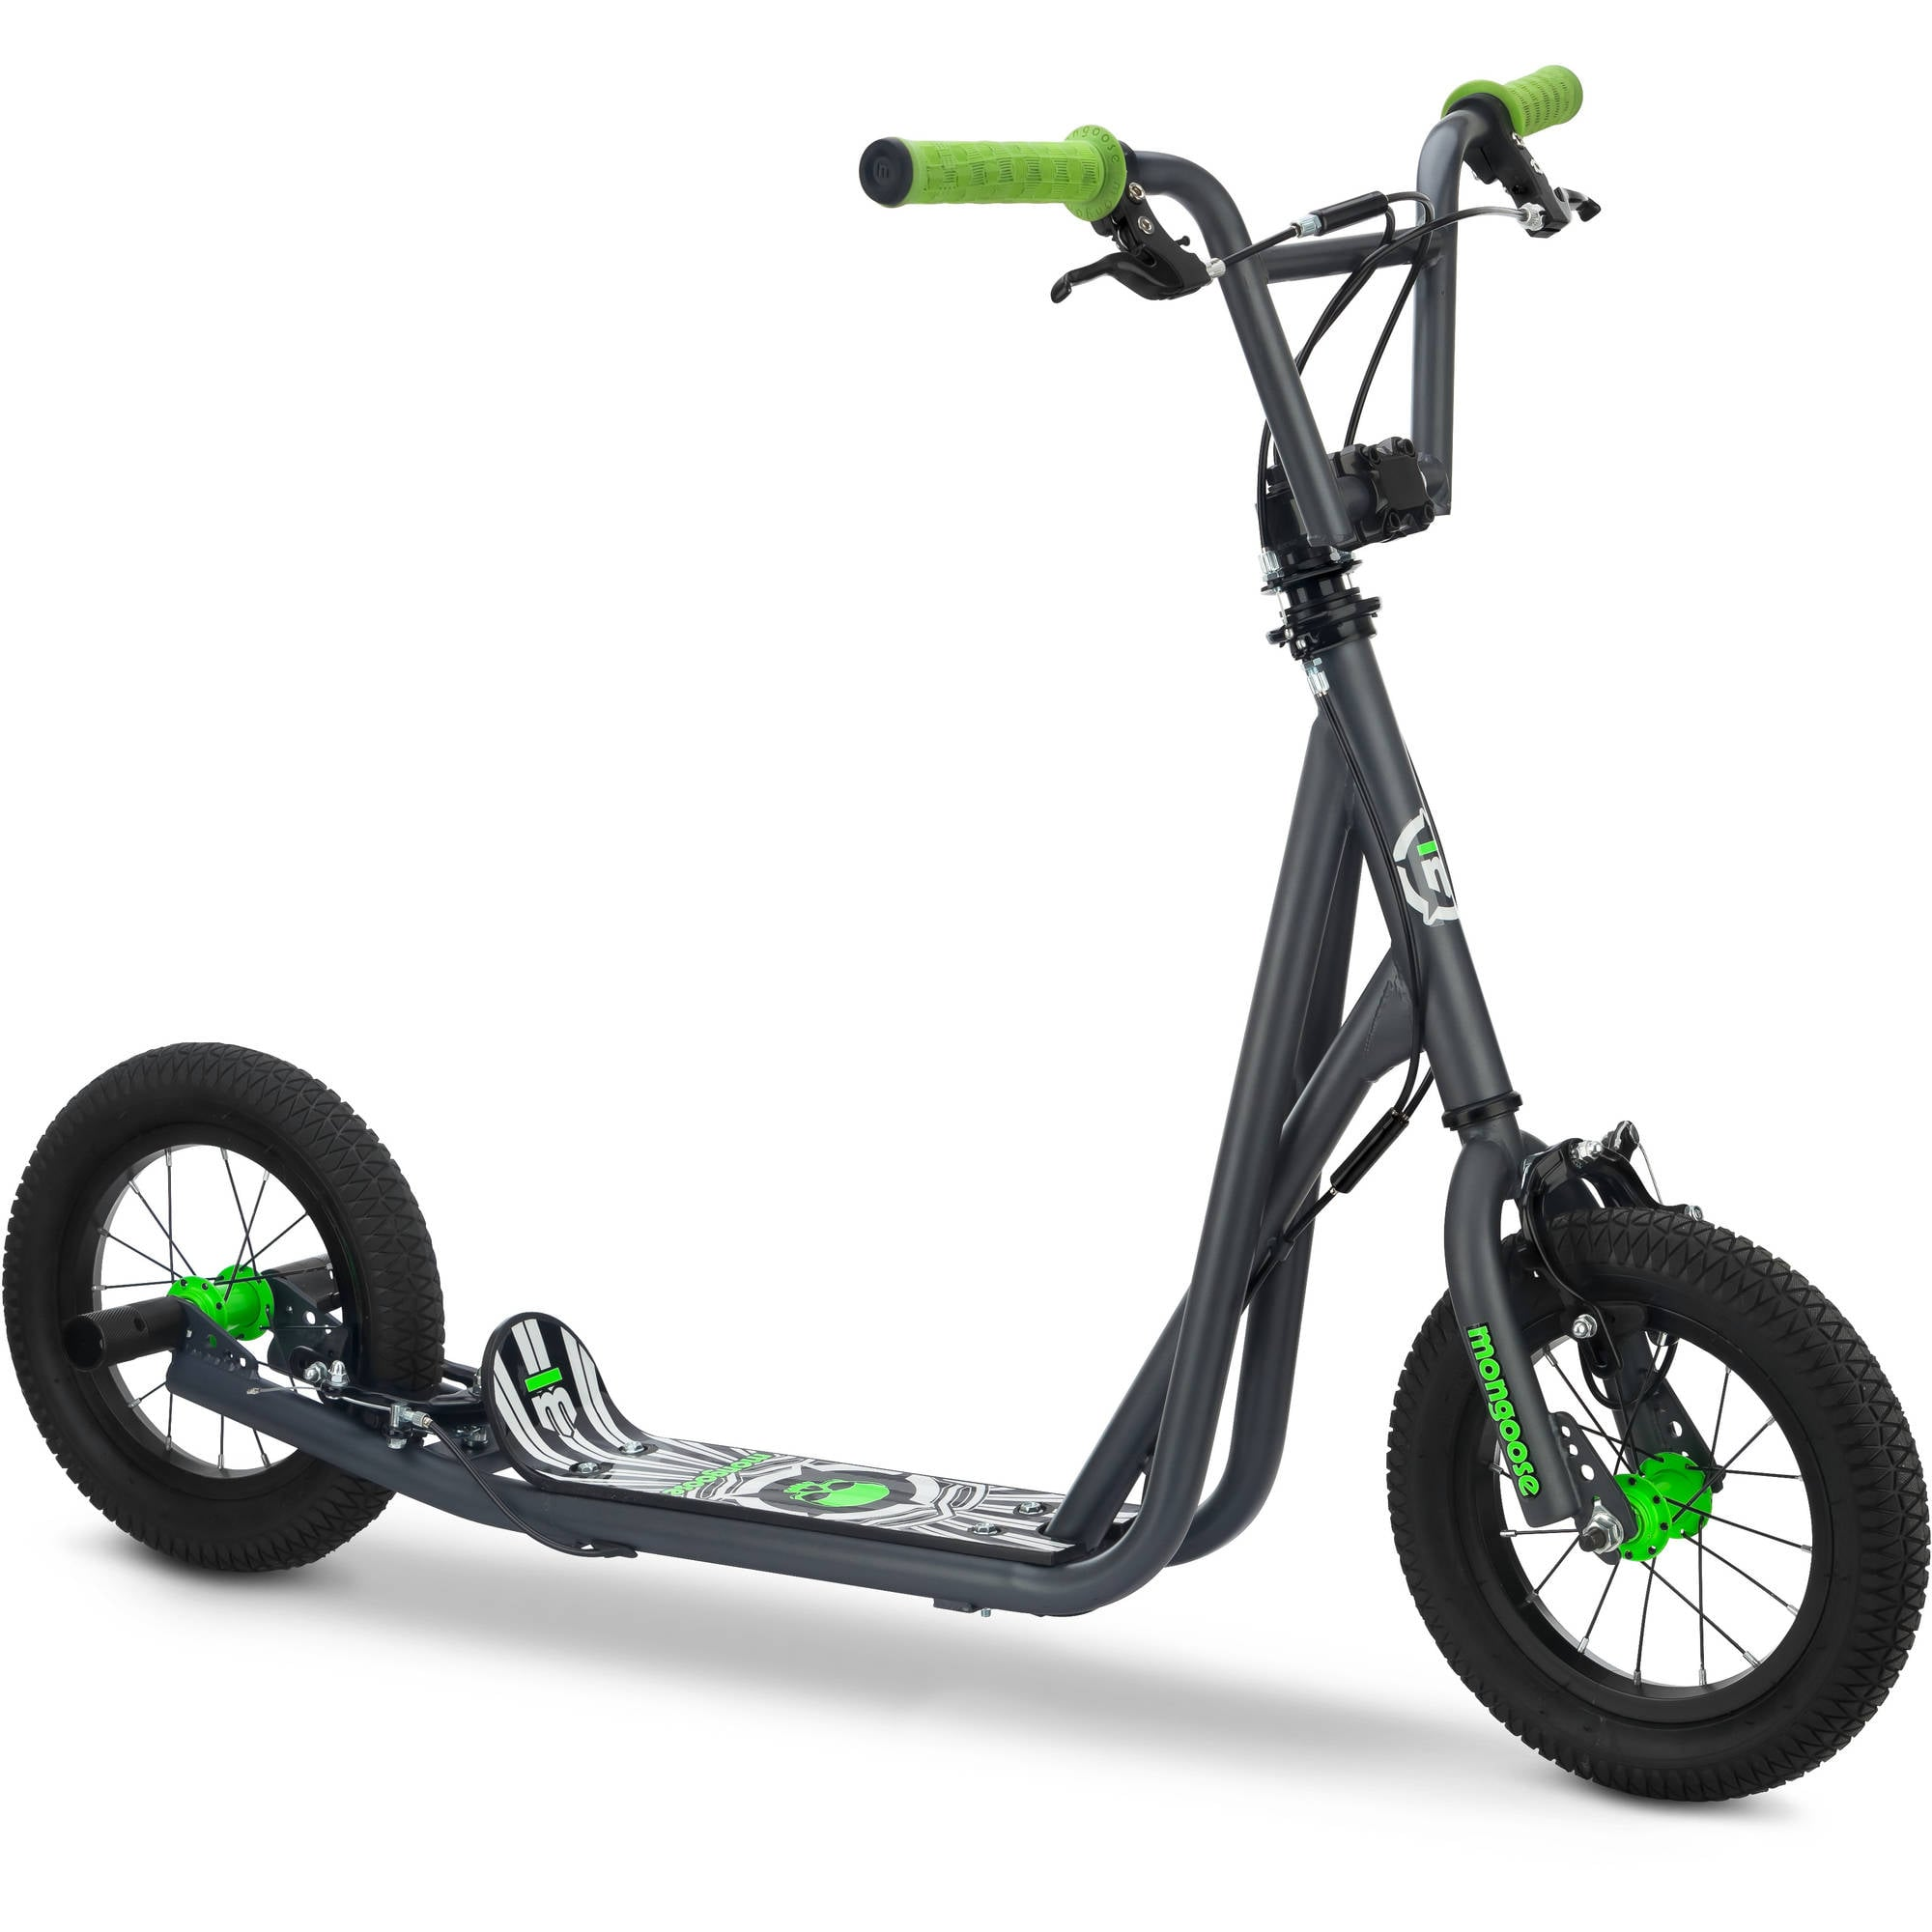 "Mongoose 12"" Expo Scooter $79"